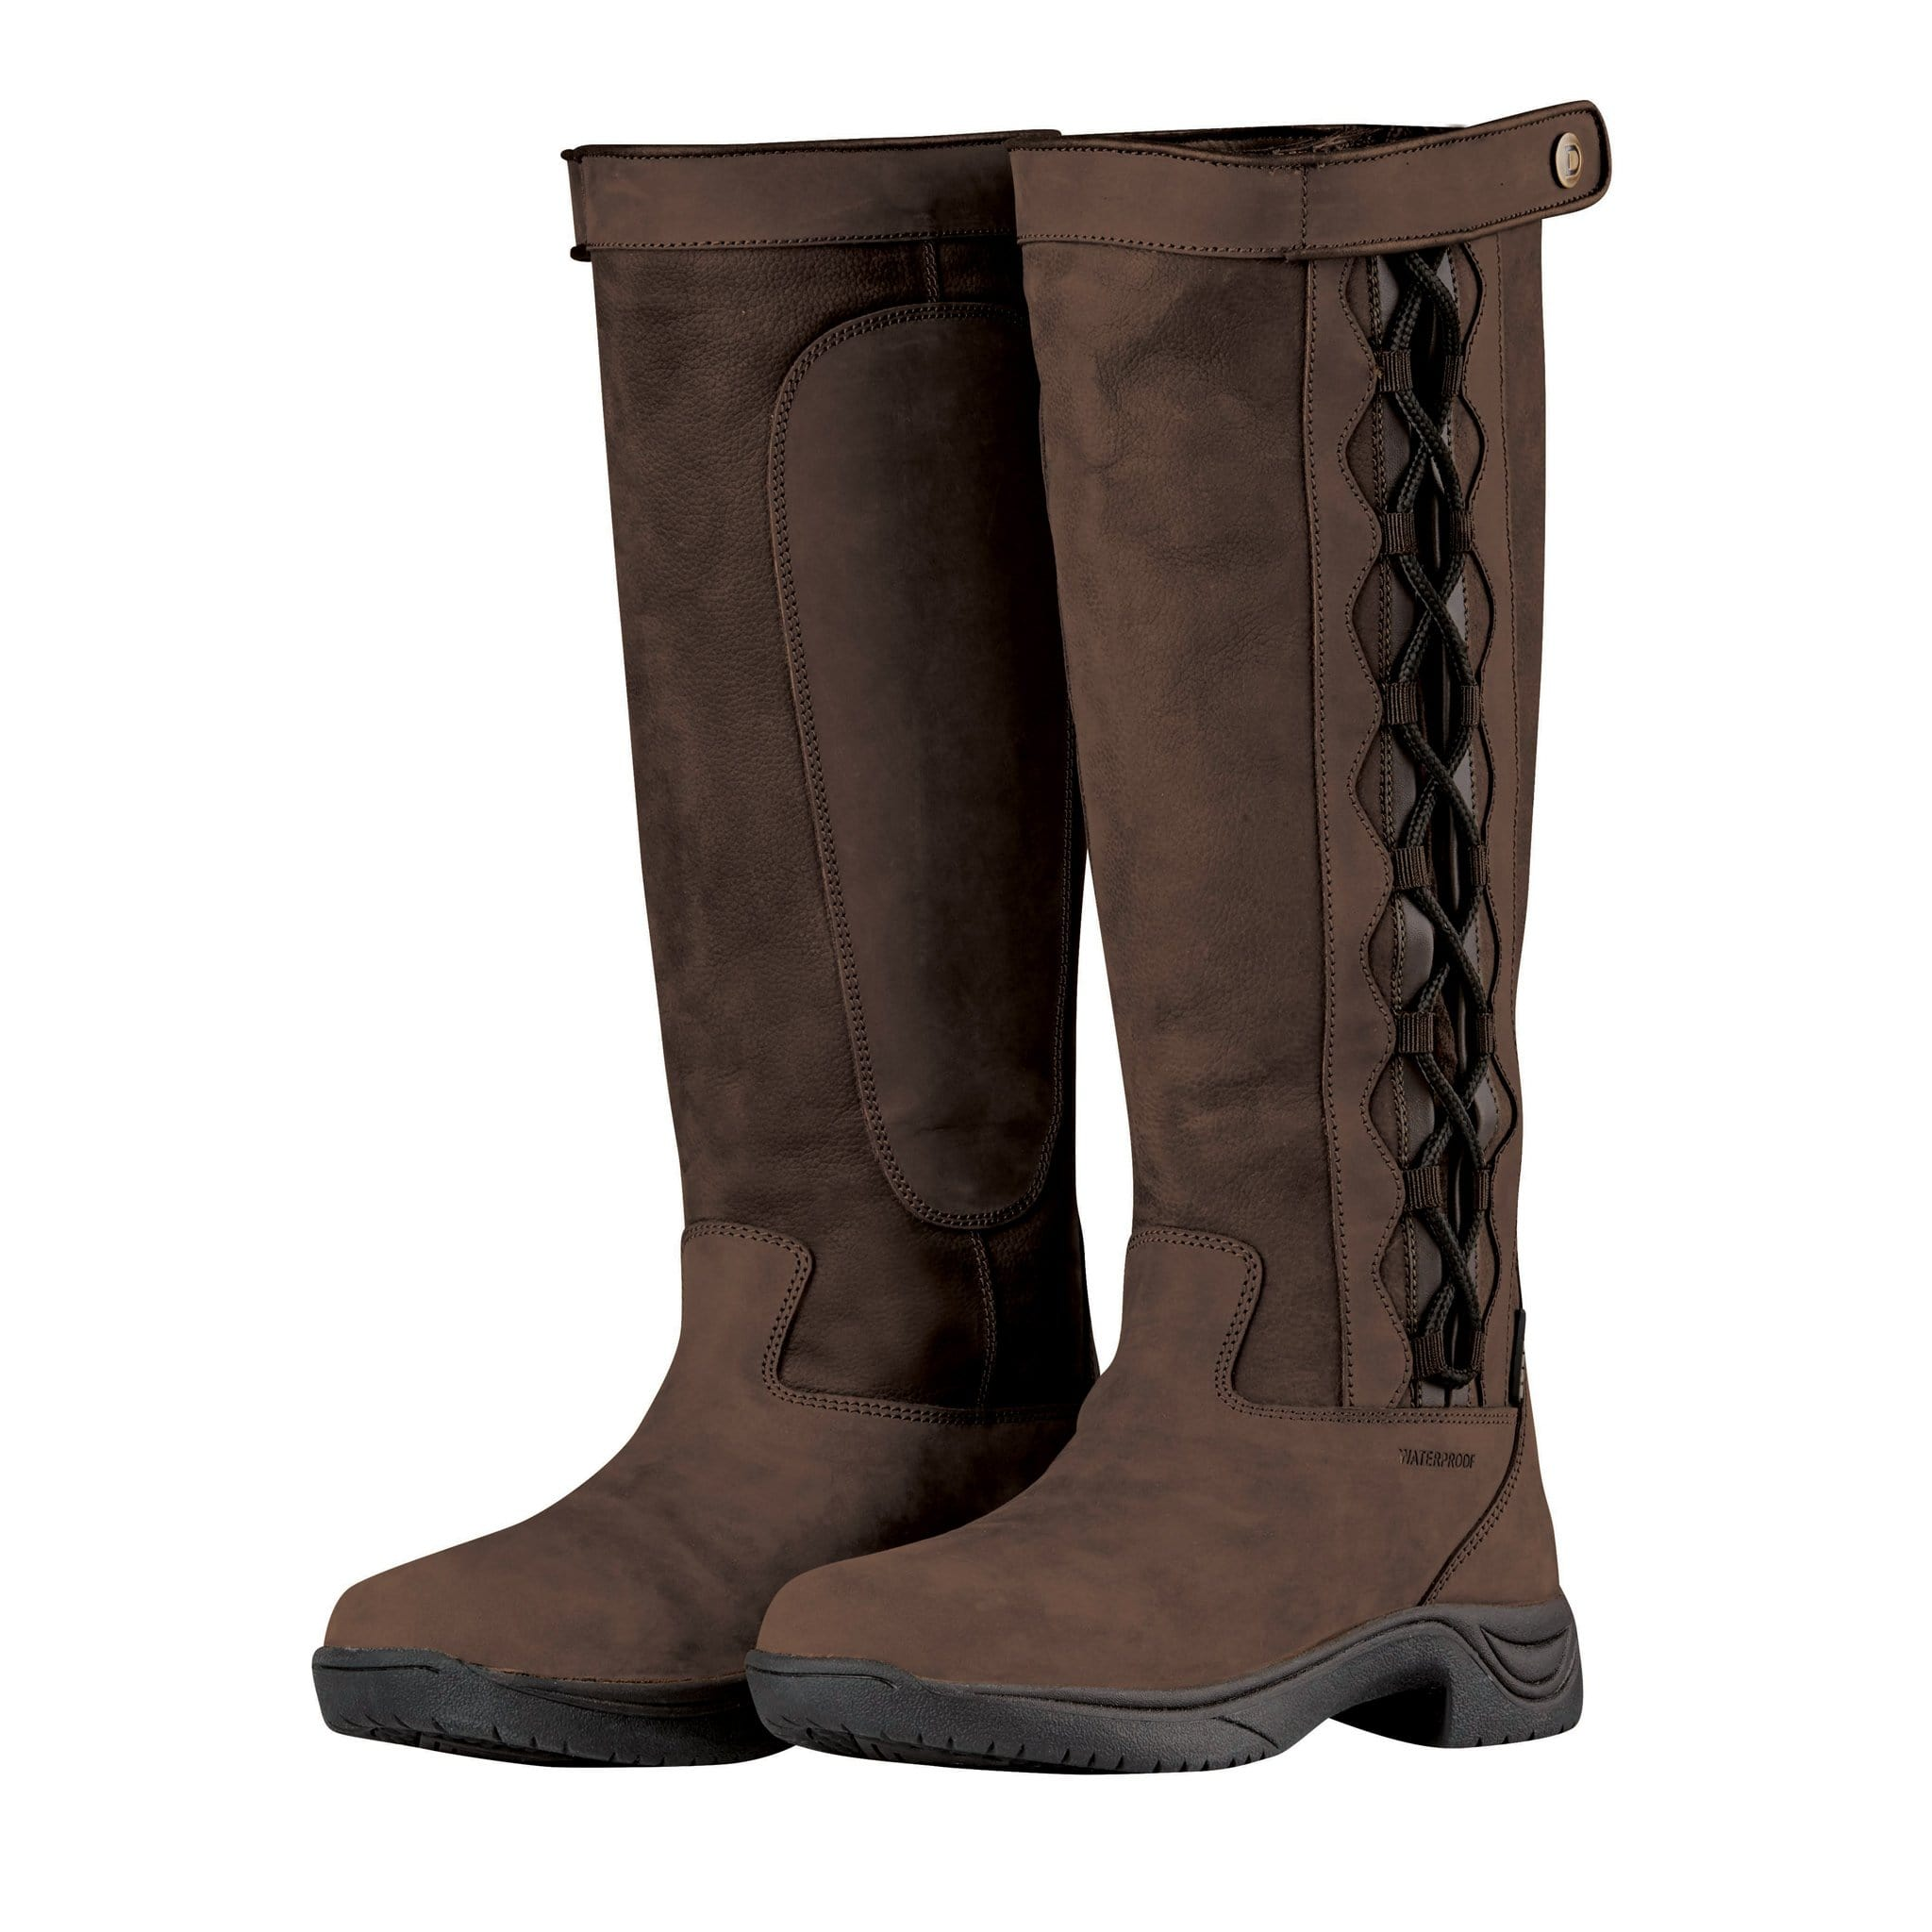 Dublin Pinnacle Boots II in Chocolate 817569